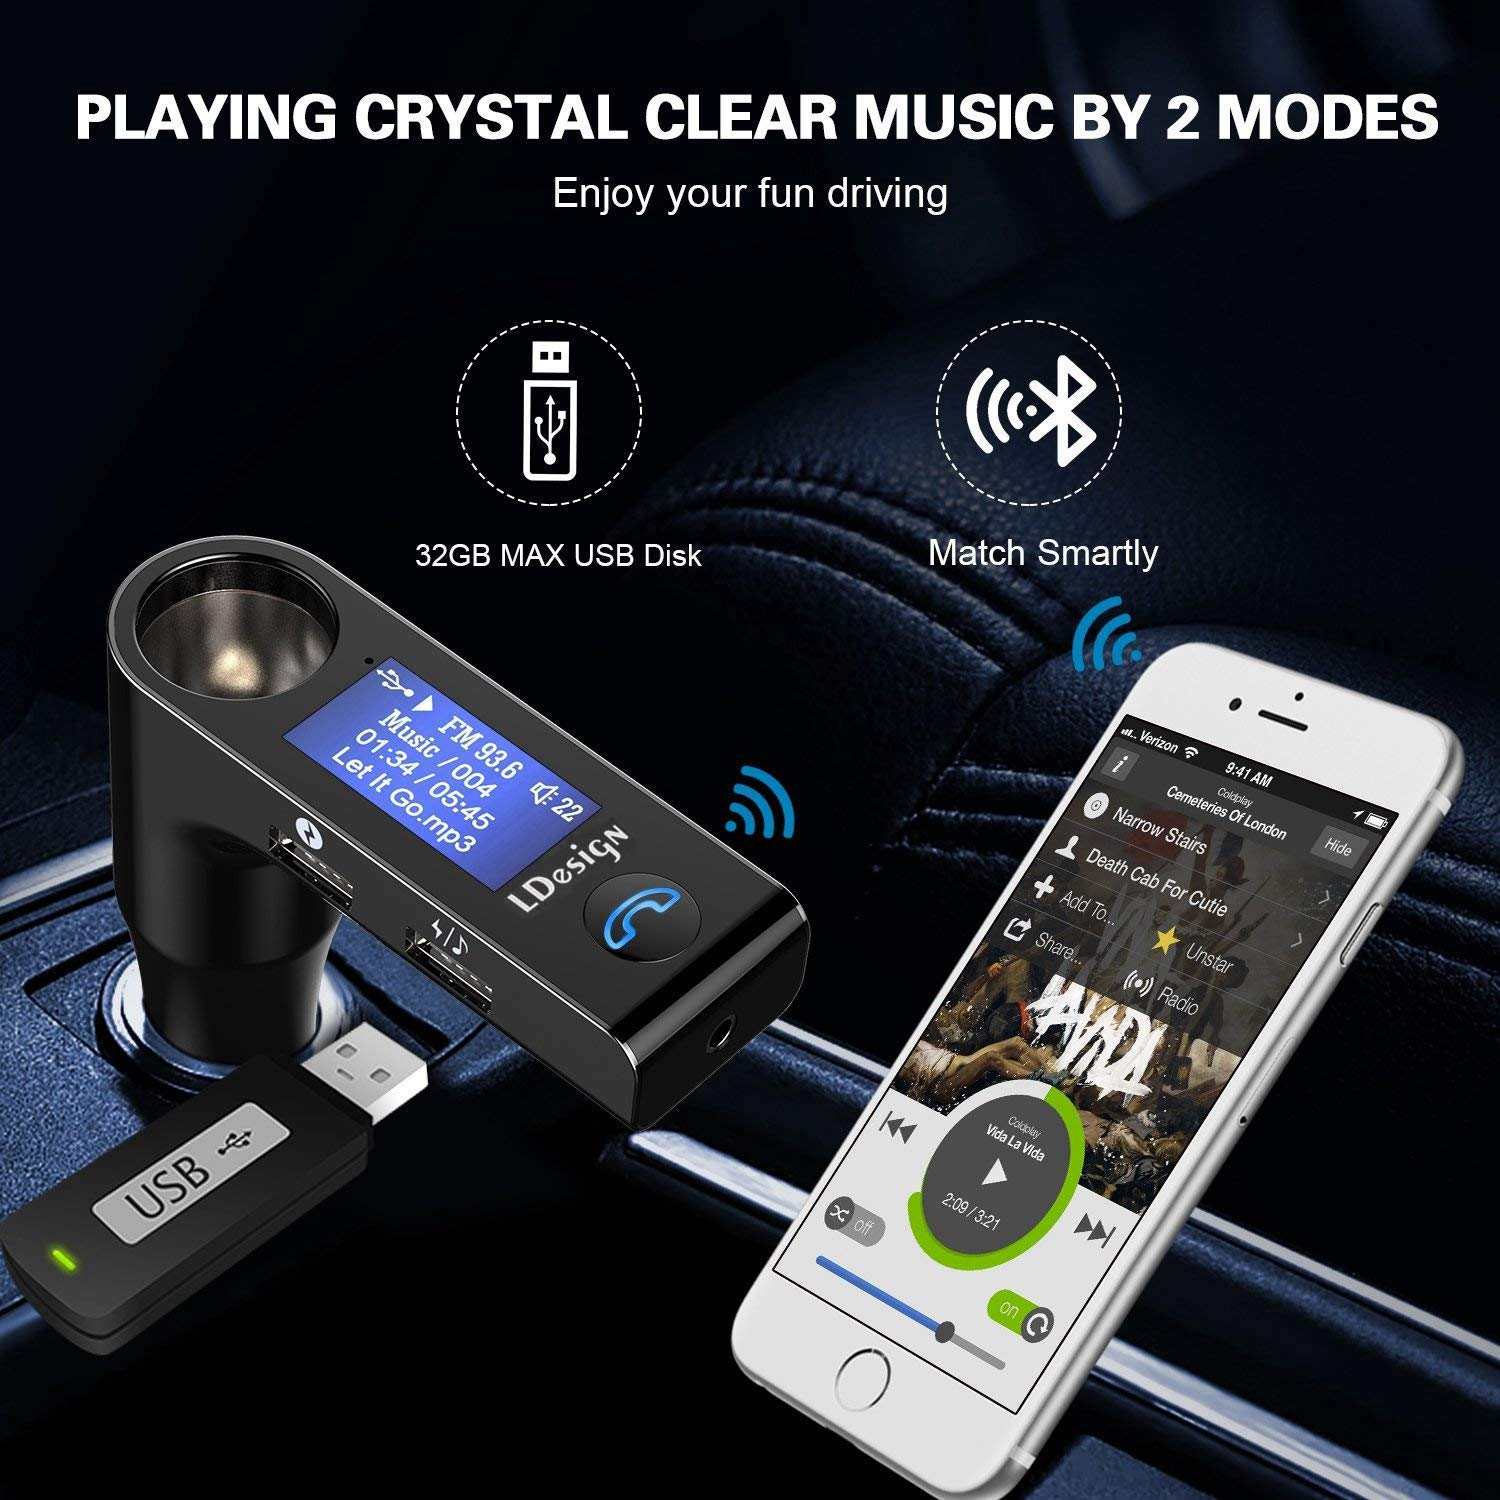 LoHi FM Transmitter, Wireless In-Car FM Radio Adapter Car Kit with Handsfree Call, AUX Output, 3-Modes Crystal Music Play for Audio Player, Android, iPhone -Black